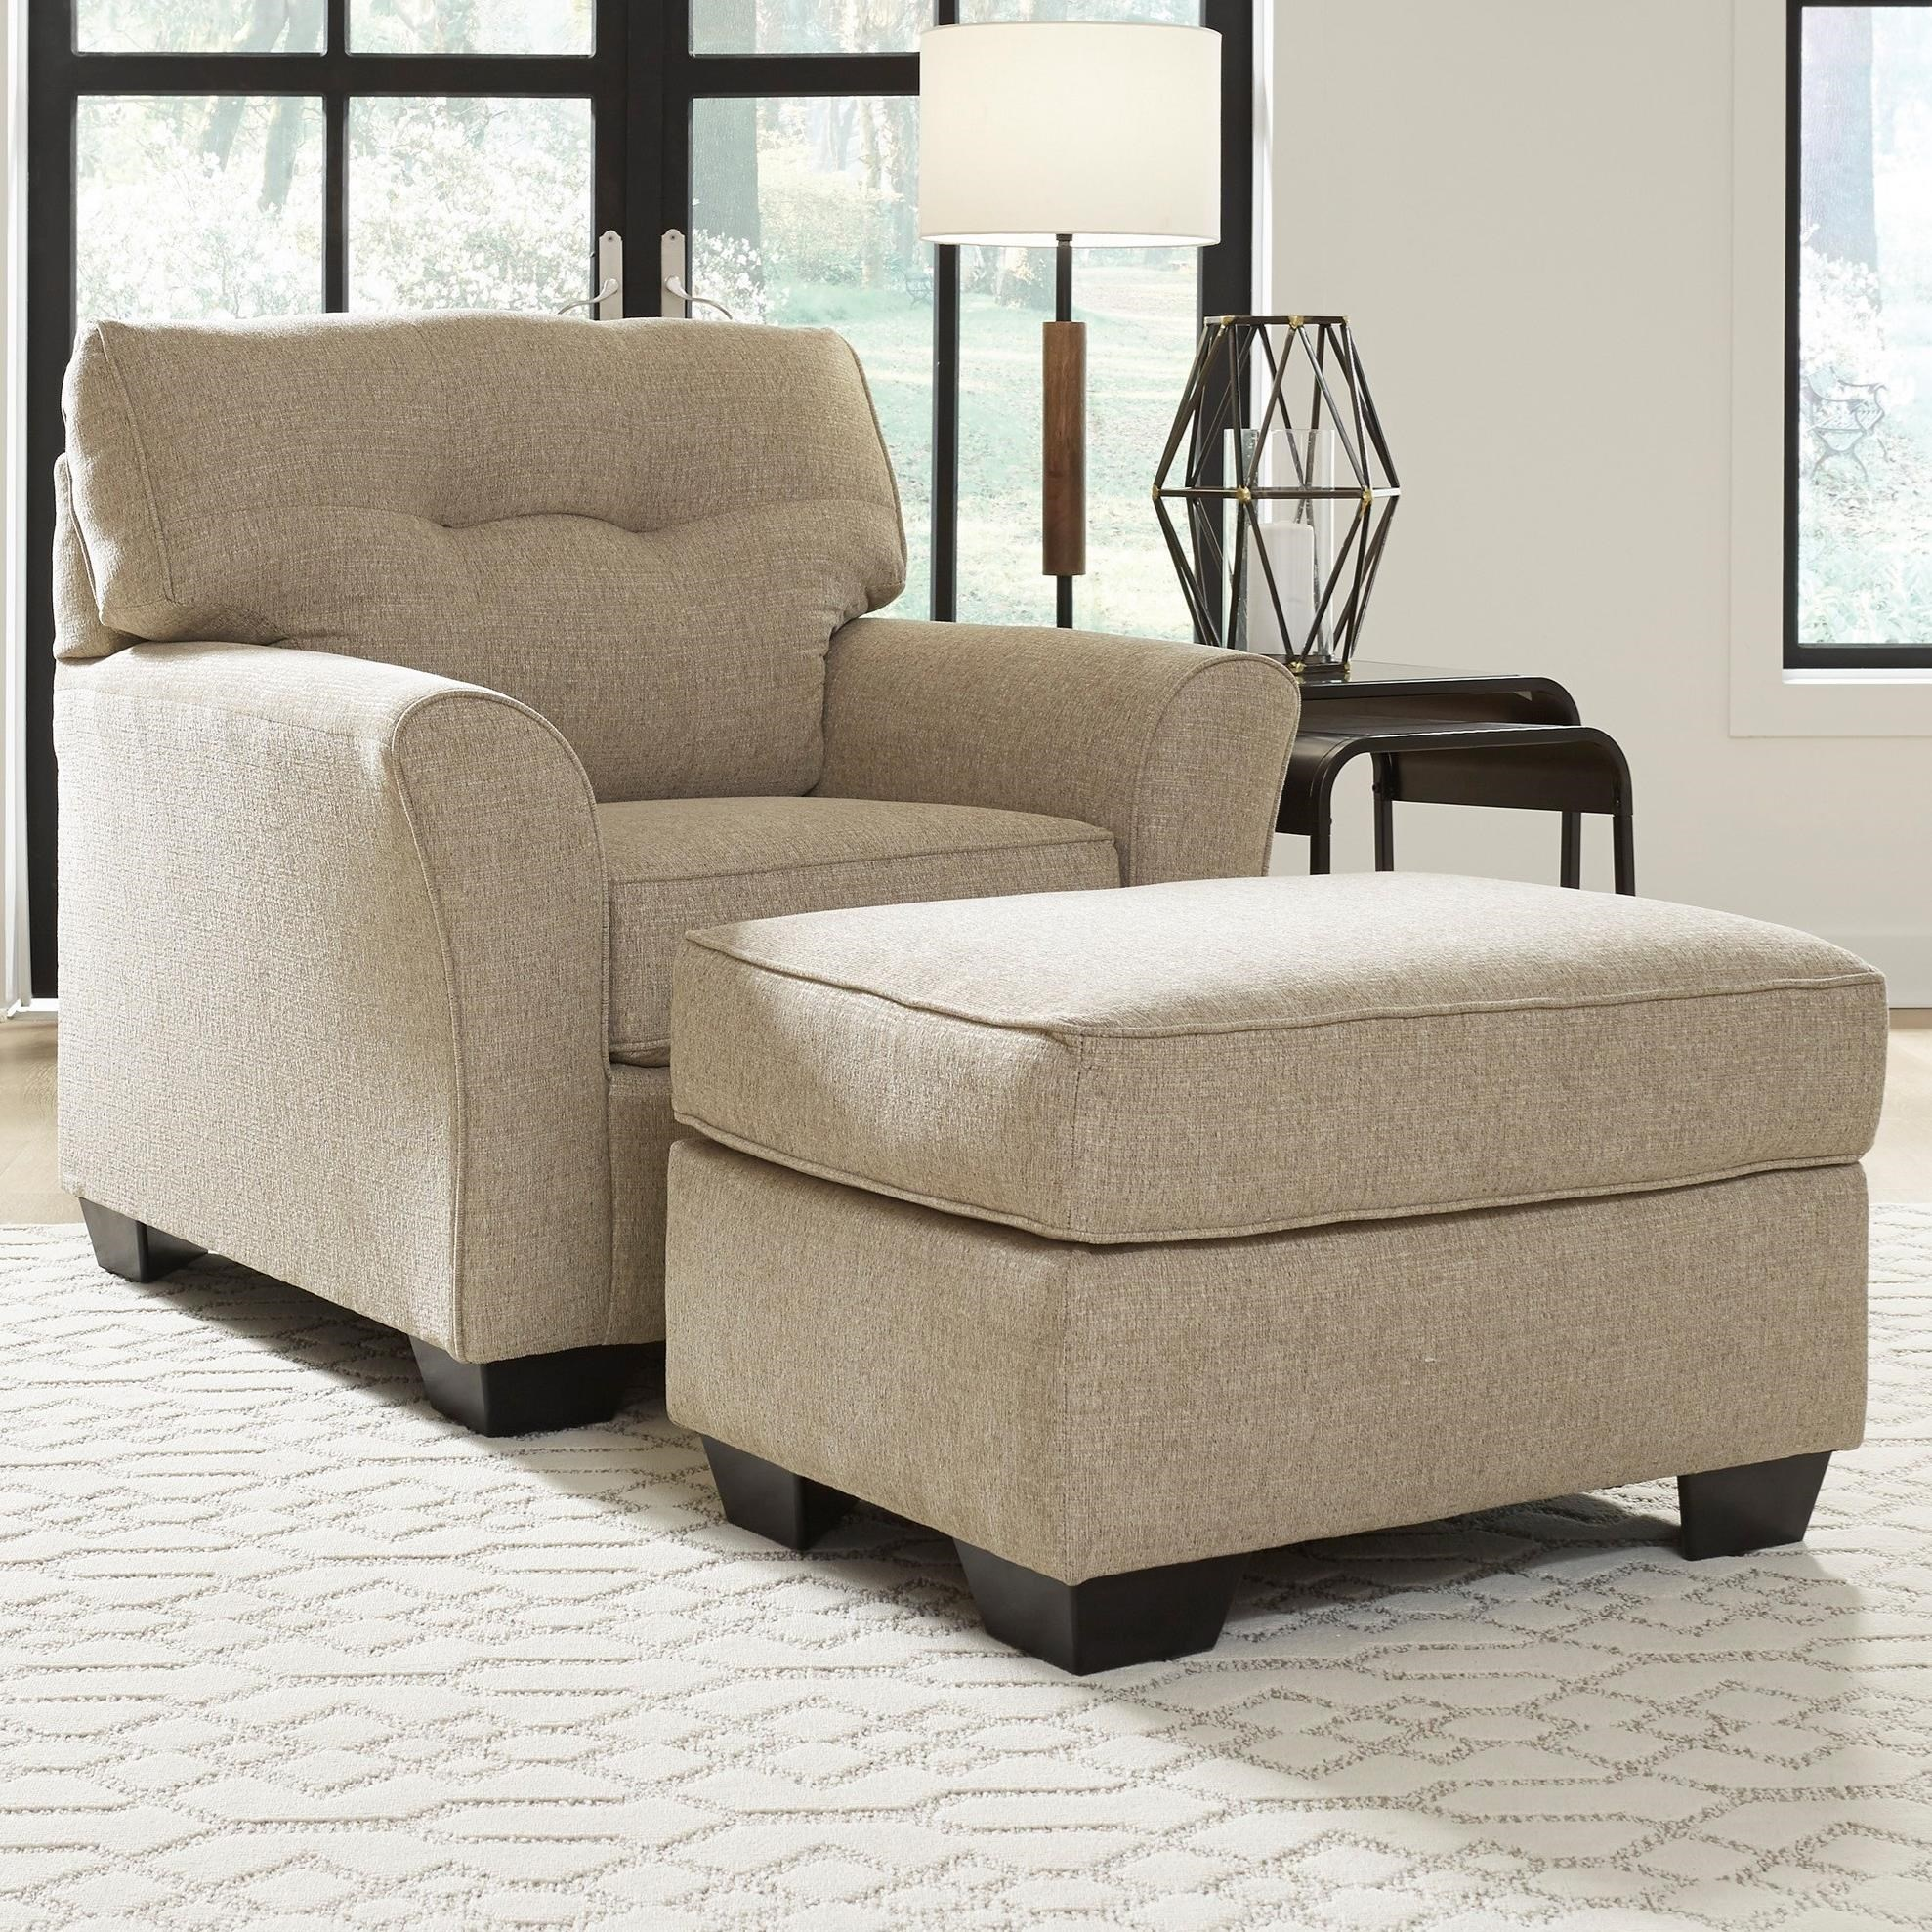 Ardmead Chair & Ottoman by Benchcraft at Lapeer Furniture & Mattress Center